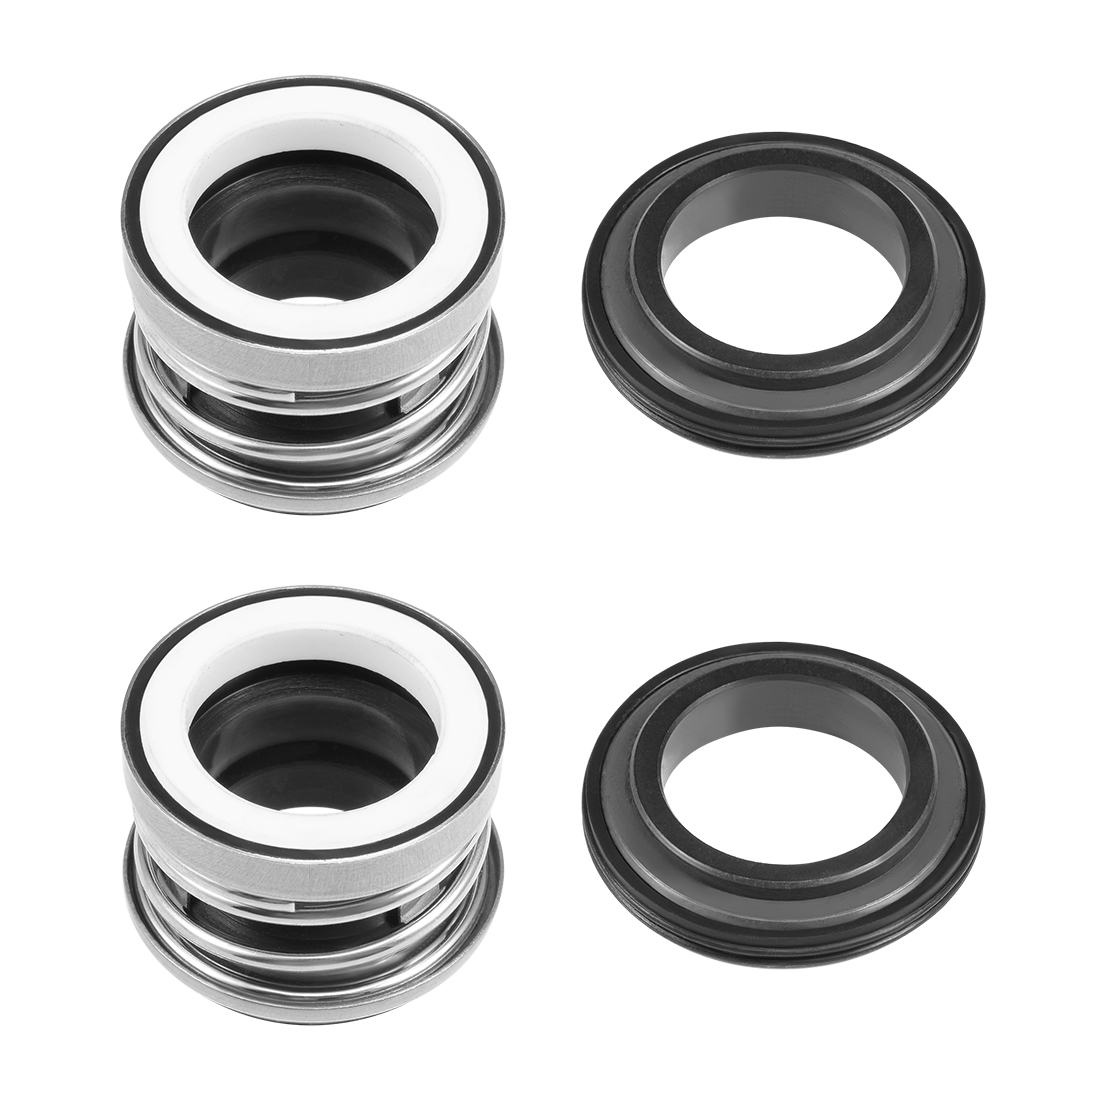 Mechanical Shaft Seal Replacement for Pool Spa Pump 2pcs 104-19 - image 4 of 4